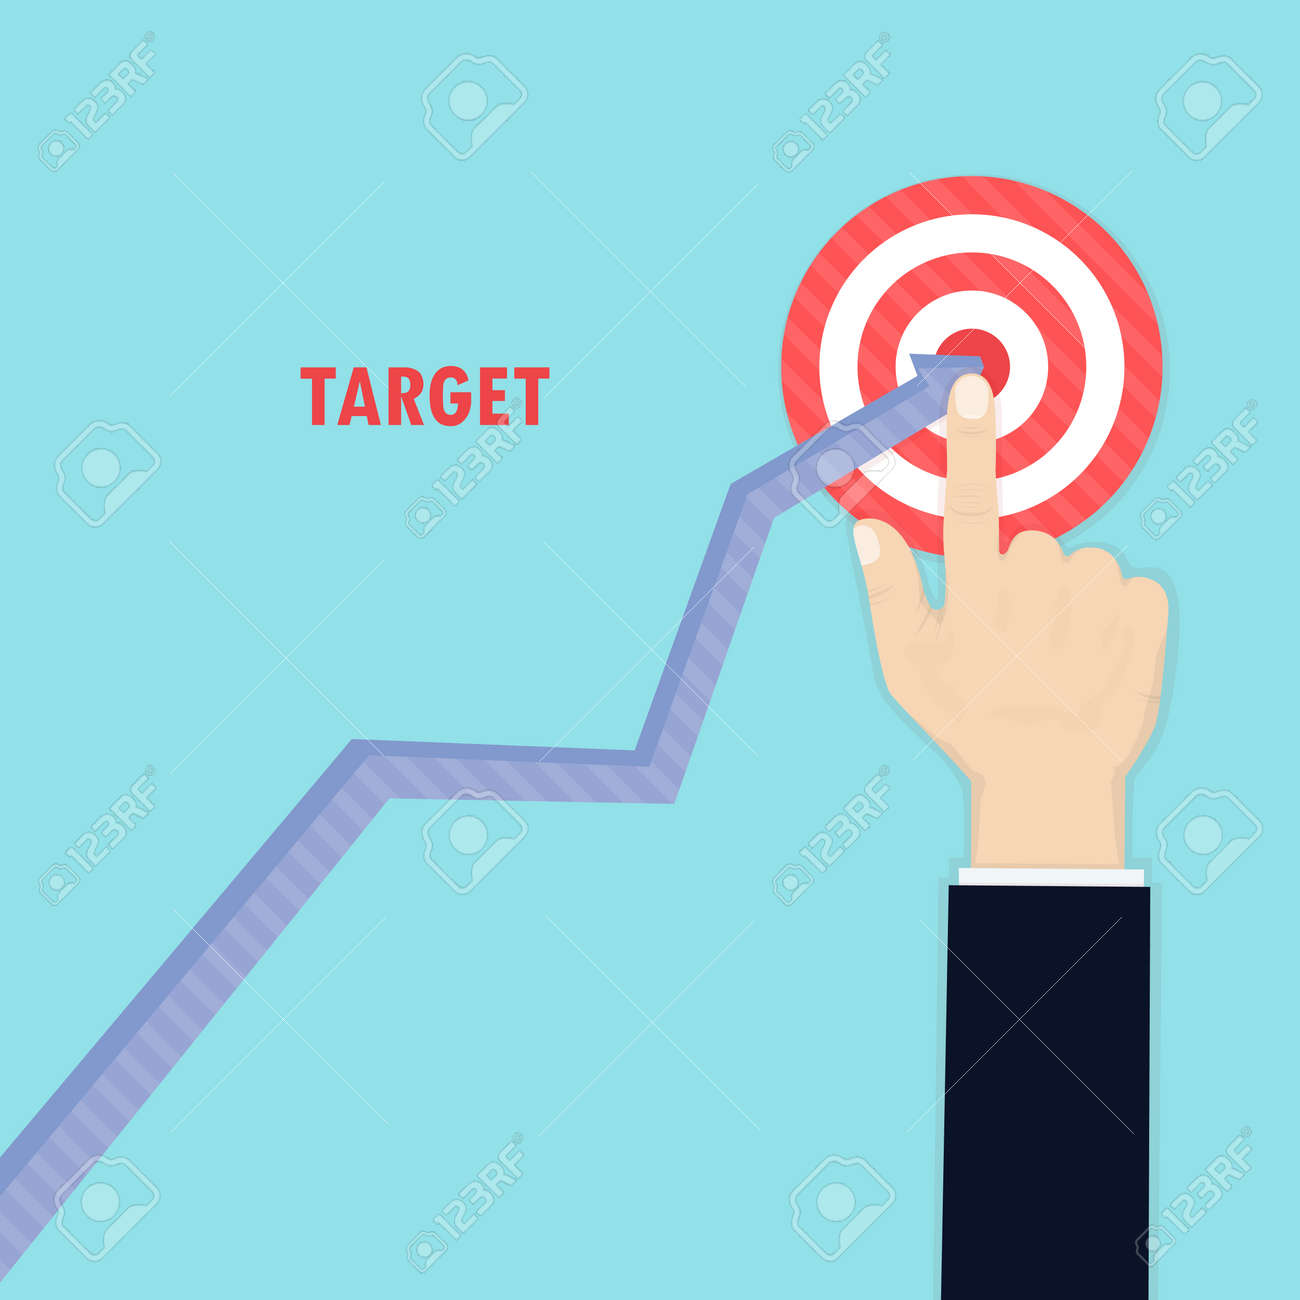 Goal AchievementSuccessful Way Up To GoalAmbition BusinessPath Chart TargetBusinessman Top GraphAspiration VictoryConcept Of The Teamwork For